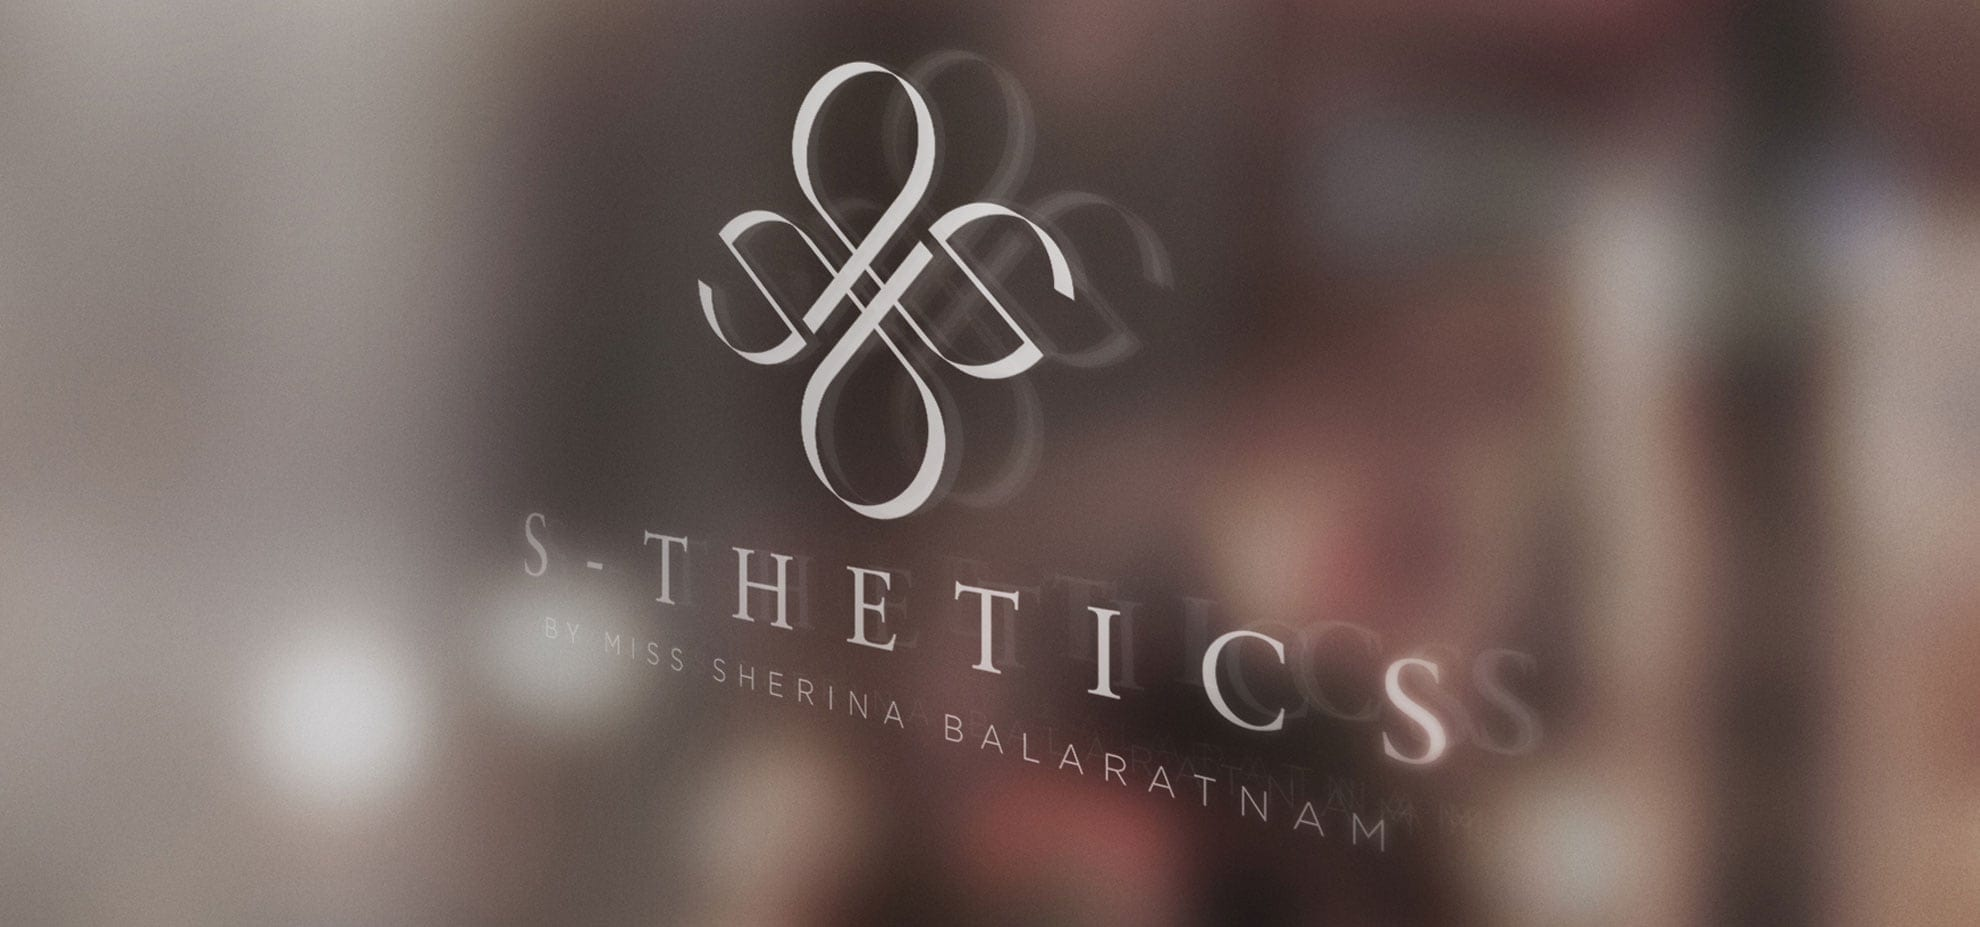 8 Reasons to choose S-Thetics for your non-surgical treatment